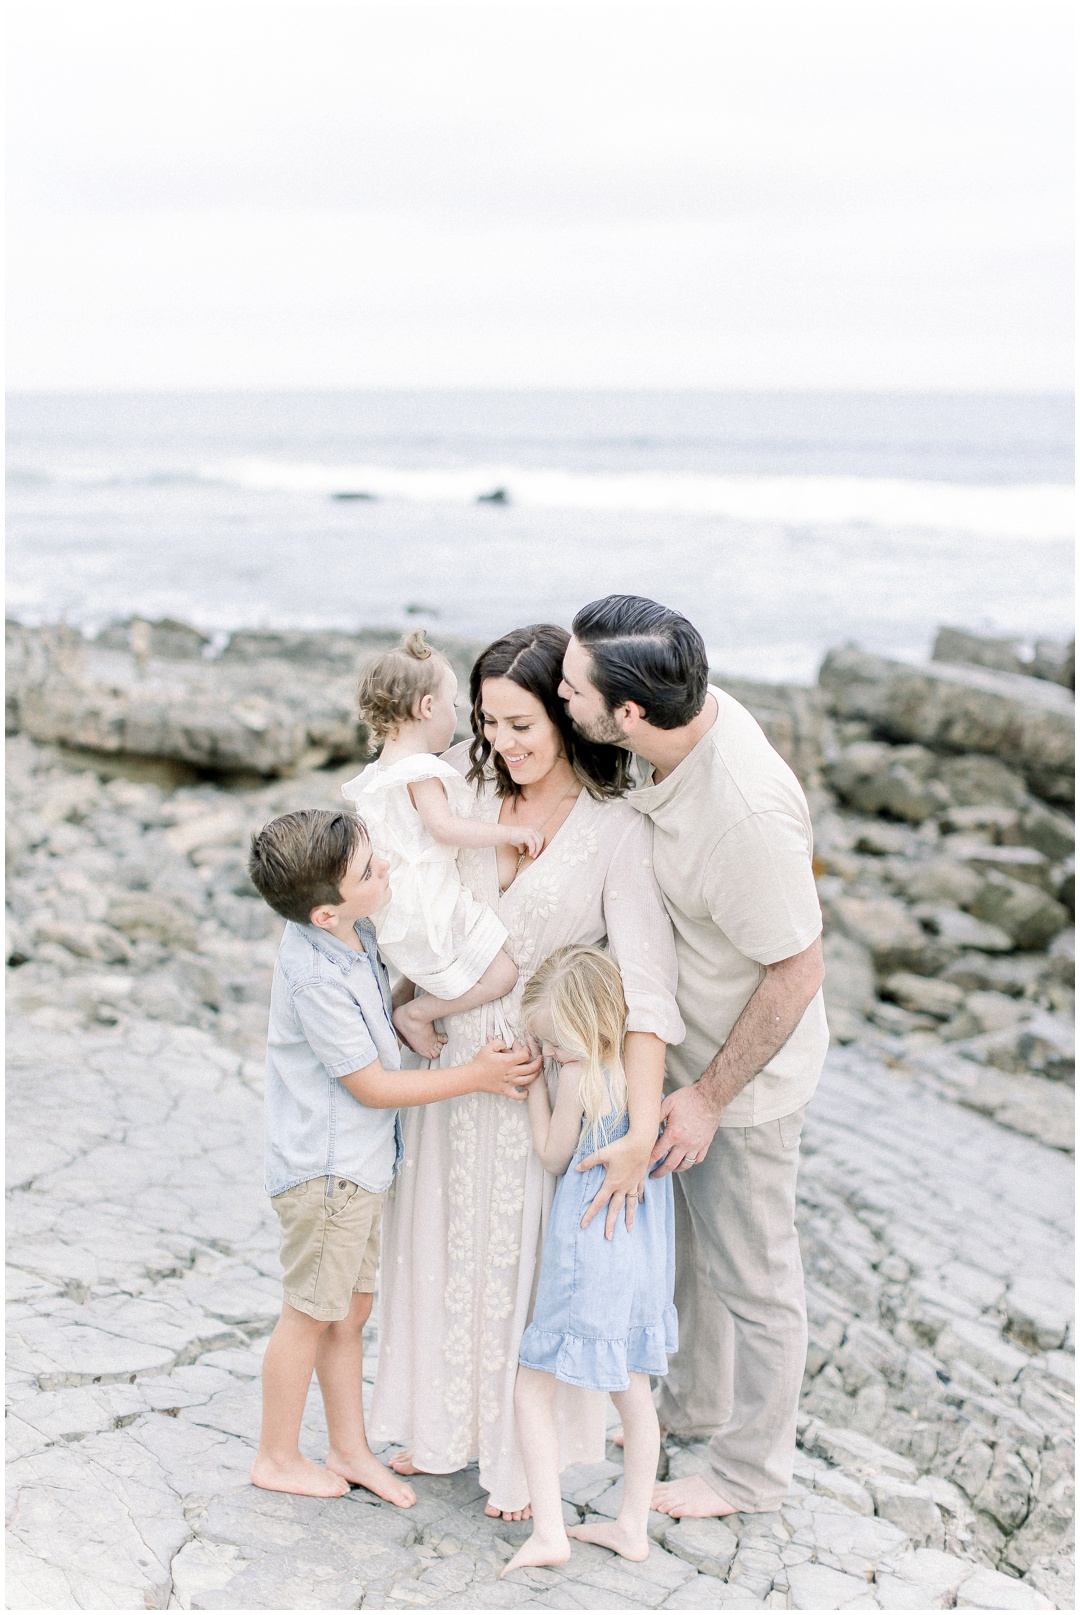 Newport_Beach_Newborn_Light_Airy_Natural_Photographer_Newport_Beach_Photographer_Orange_County_Family_Photographer_Cori_Kleckner_Photography_Newport_Beach_Photographer_Alexis_McElwee__4040.jpg